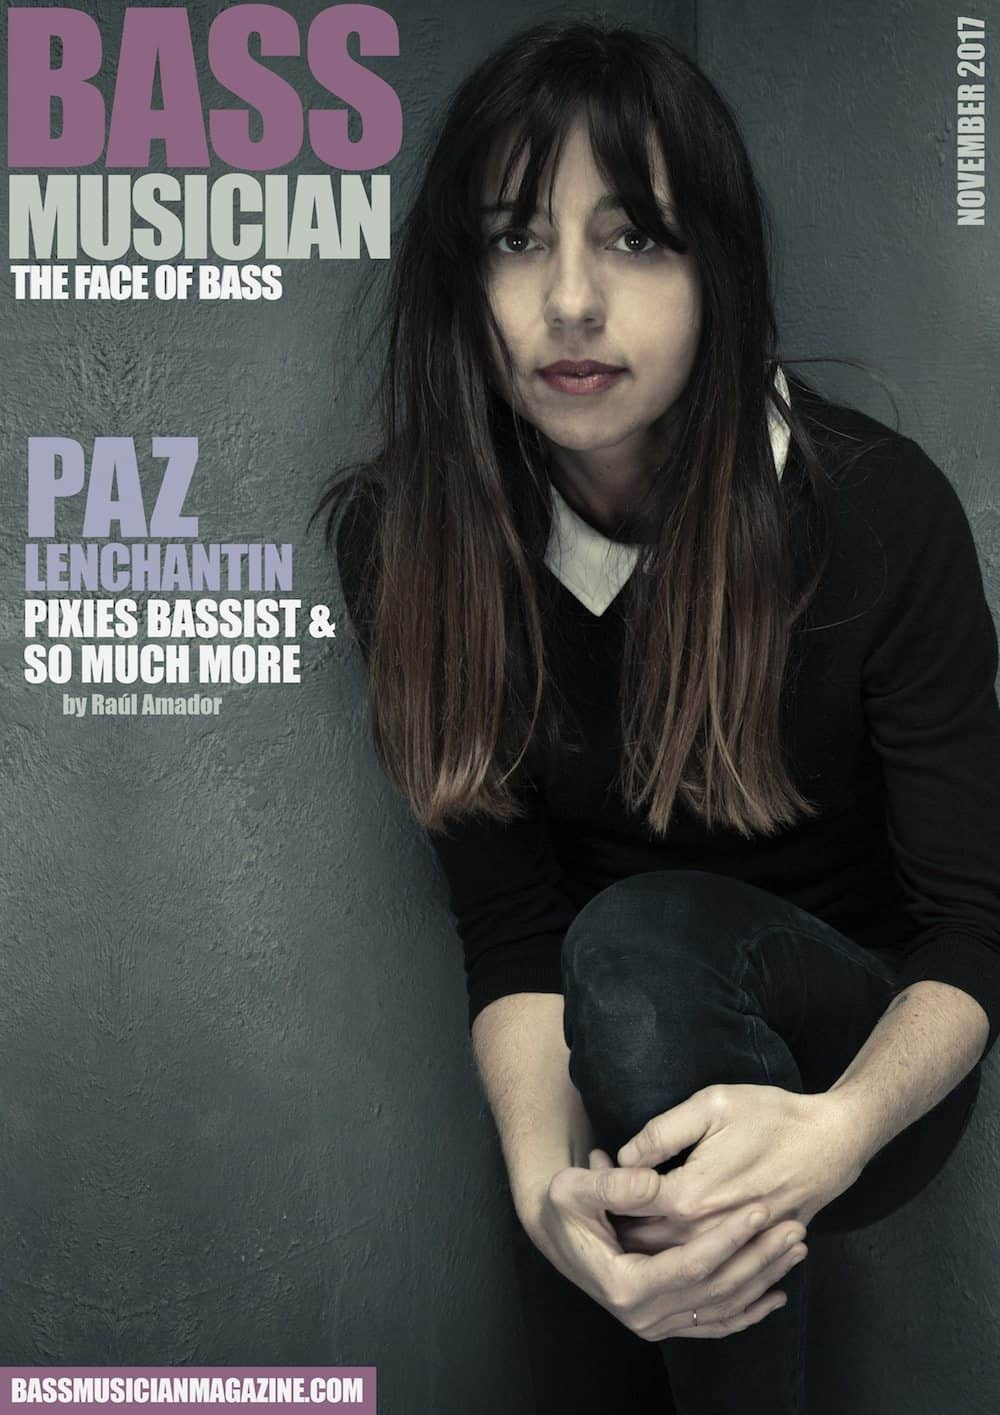 bass-musician-magazine-for bass players